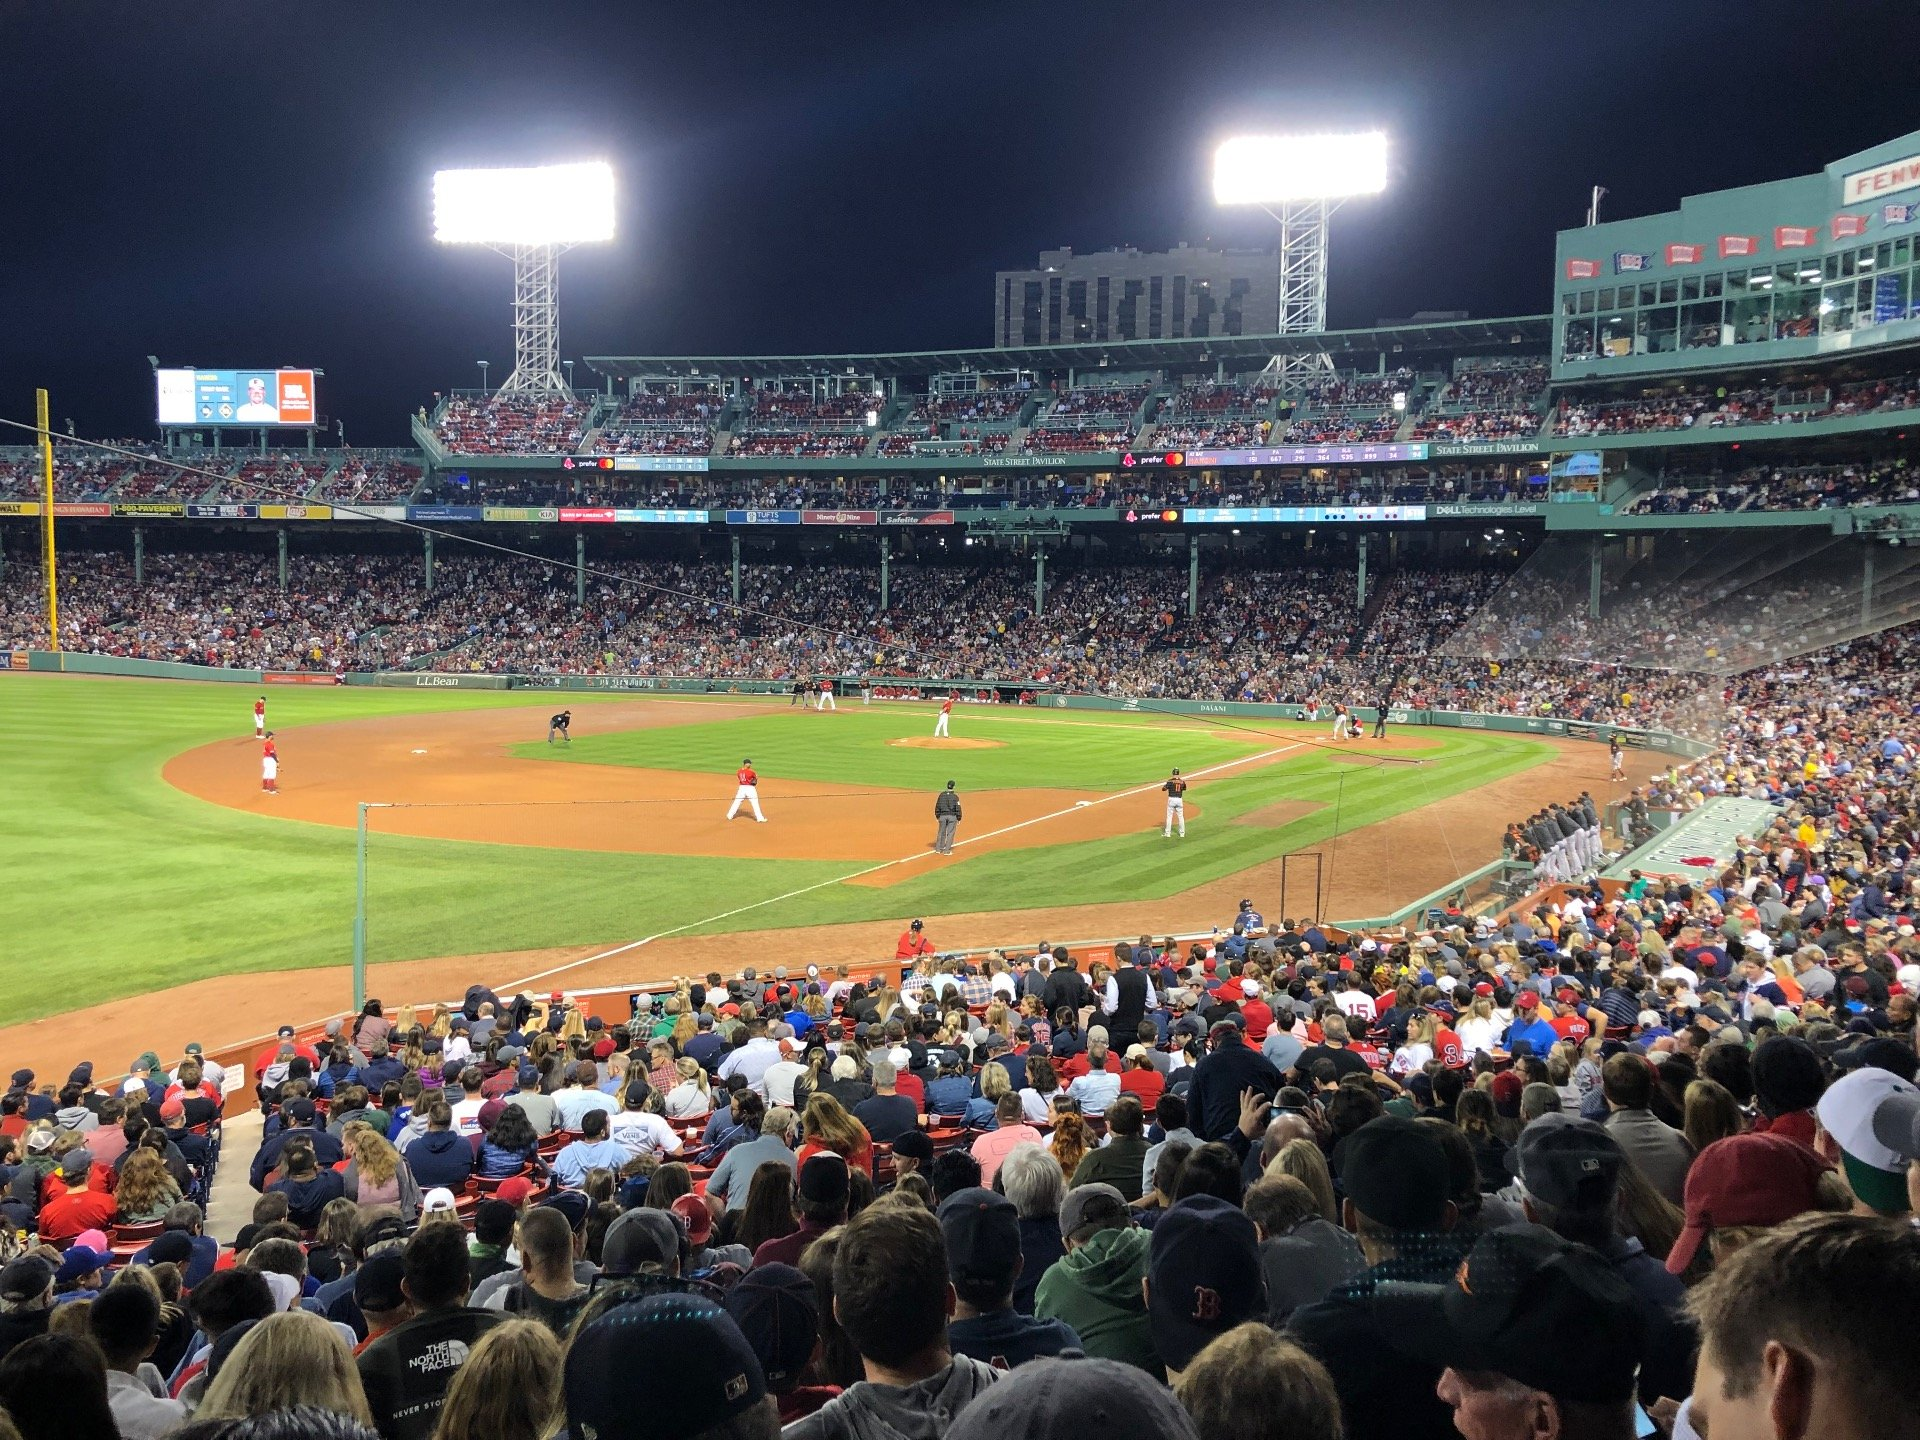 Fenway Park Section Grandstand 31 Row 1 Seat 5